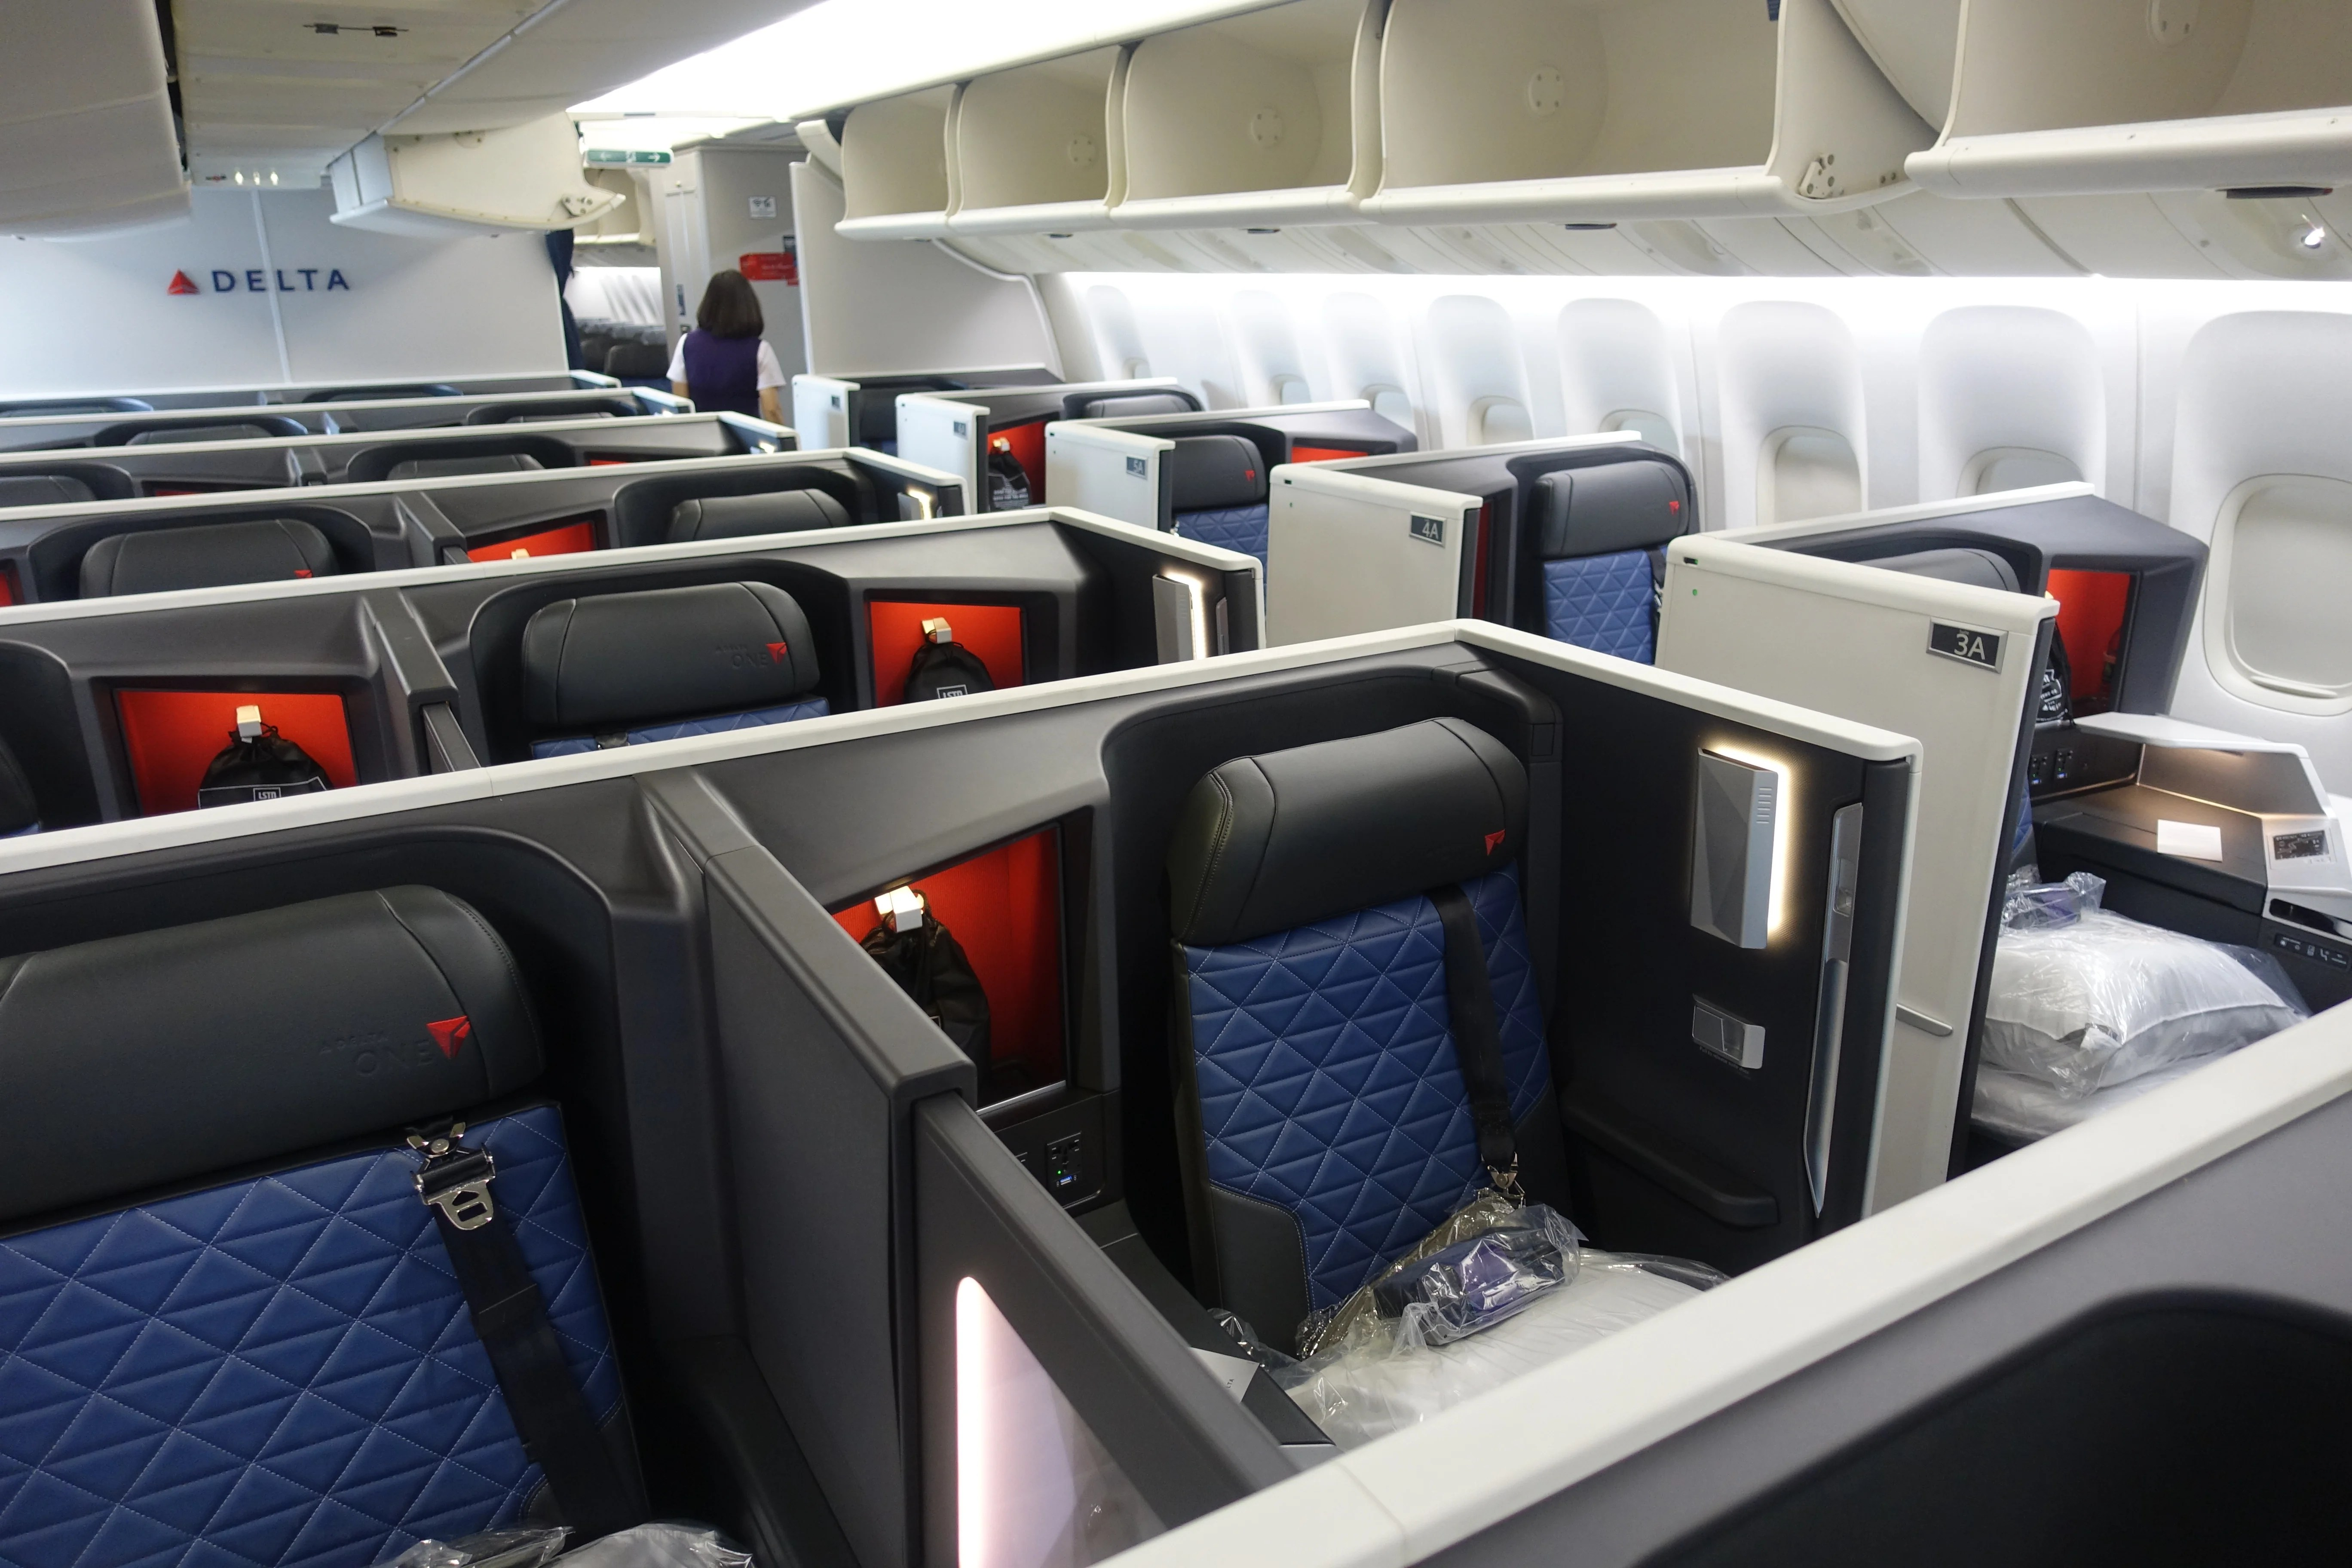 Every Delta Air Lines Premium Seat Ranked Best to Worst on